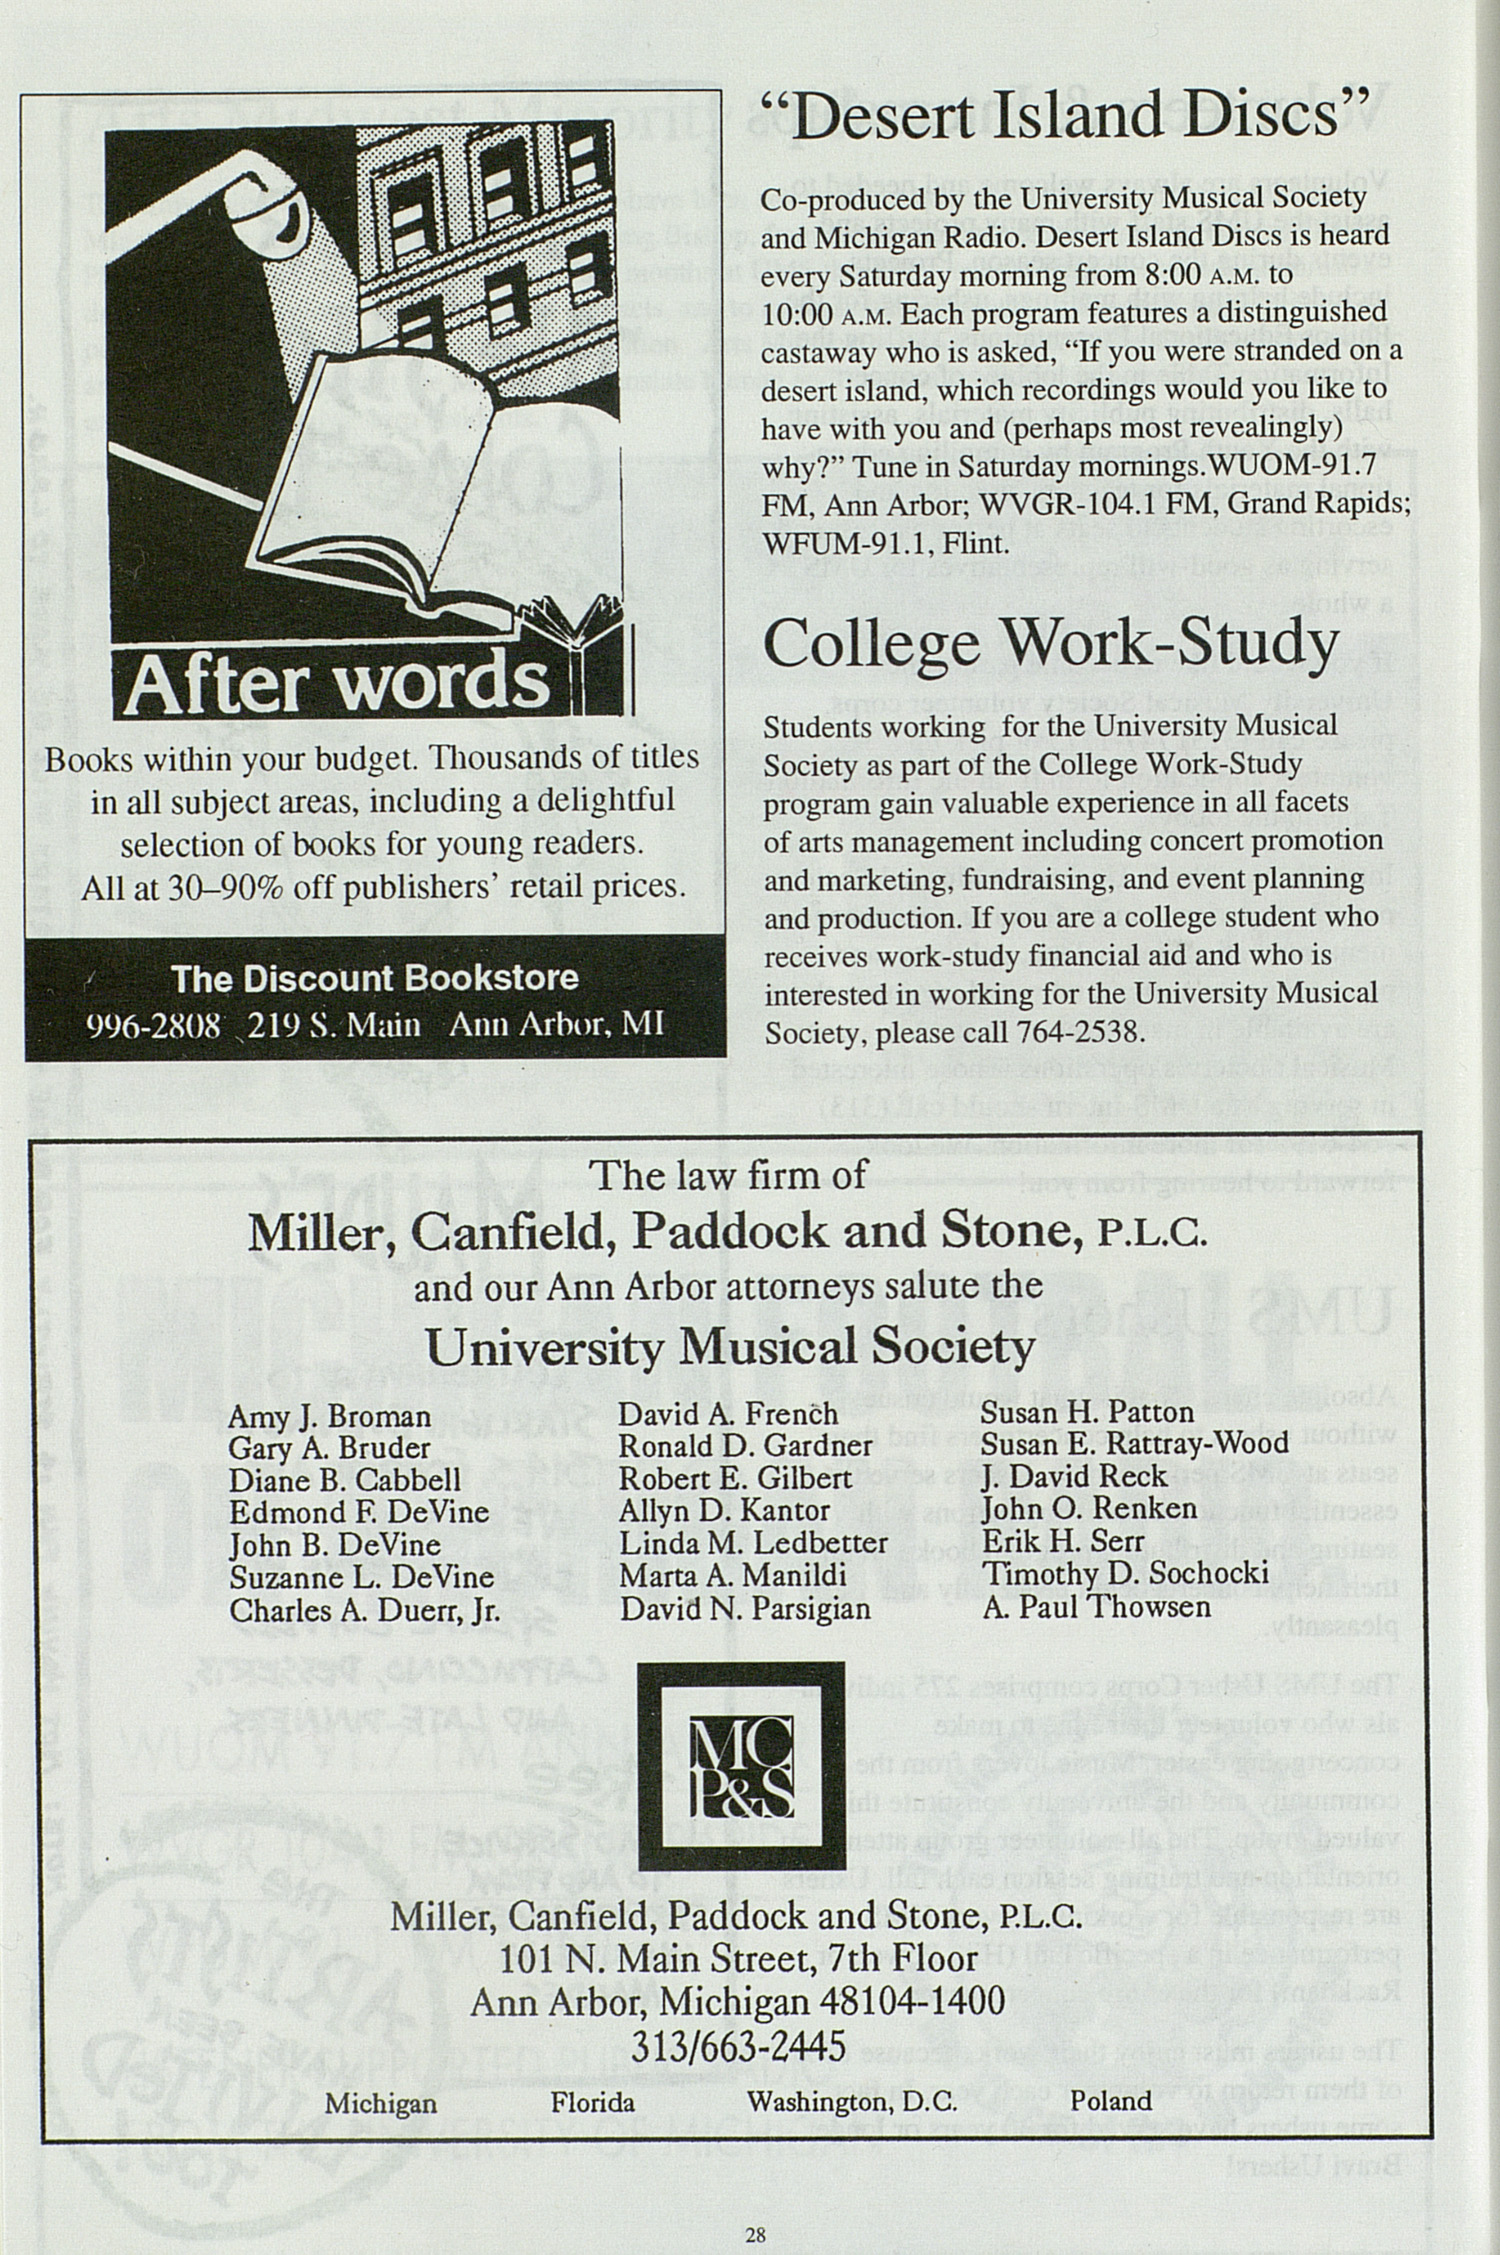 UMS Concert Program, Tuesday Nov. 15 To 20: University Musical Society: 1994-1995 Fall - Tuesday Nov. 15 To 20 --  image